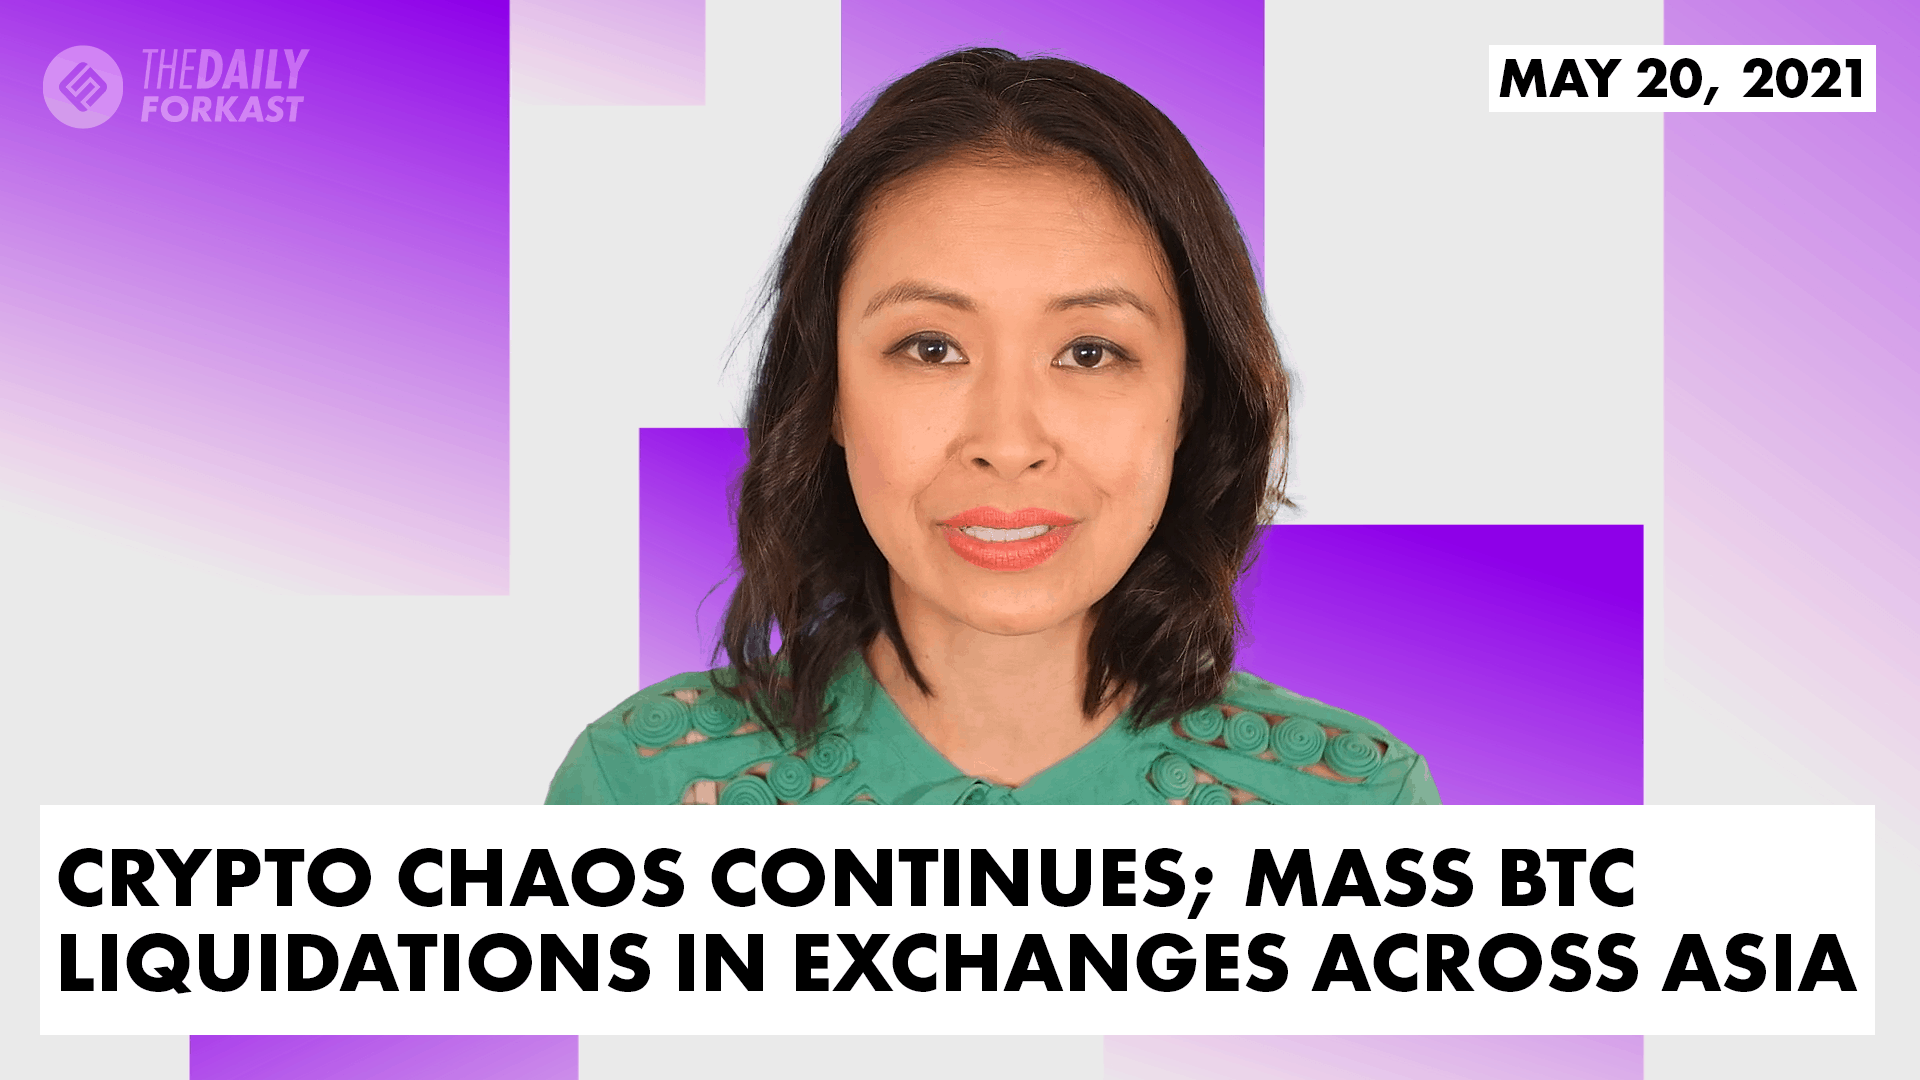 Crypto chaos continues mass BTC liquidations in exchanges across Asia